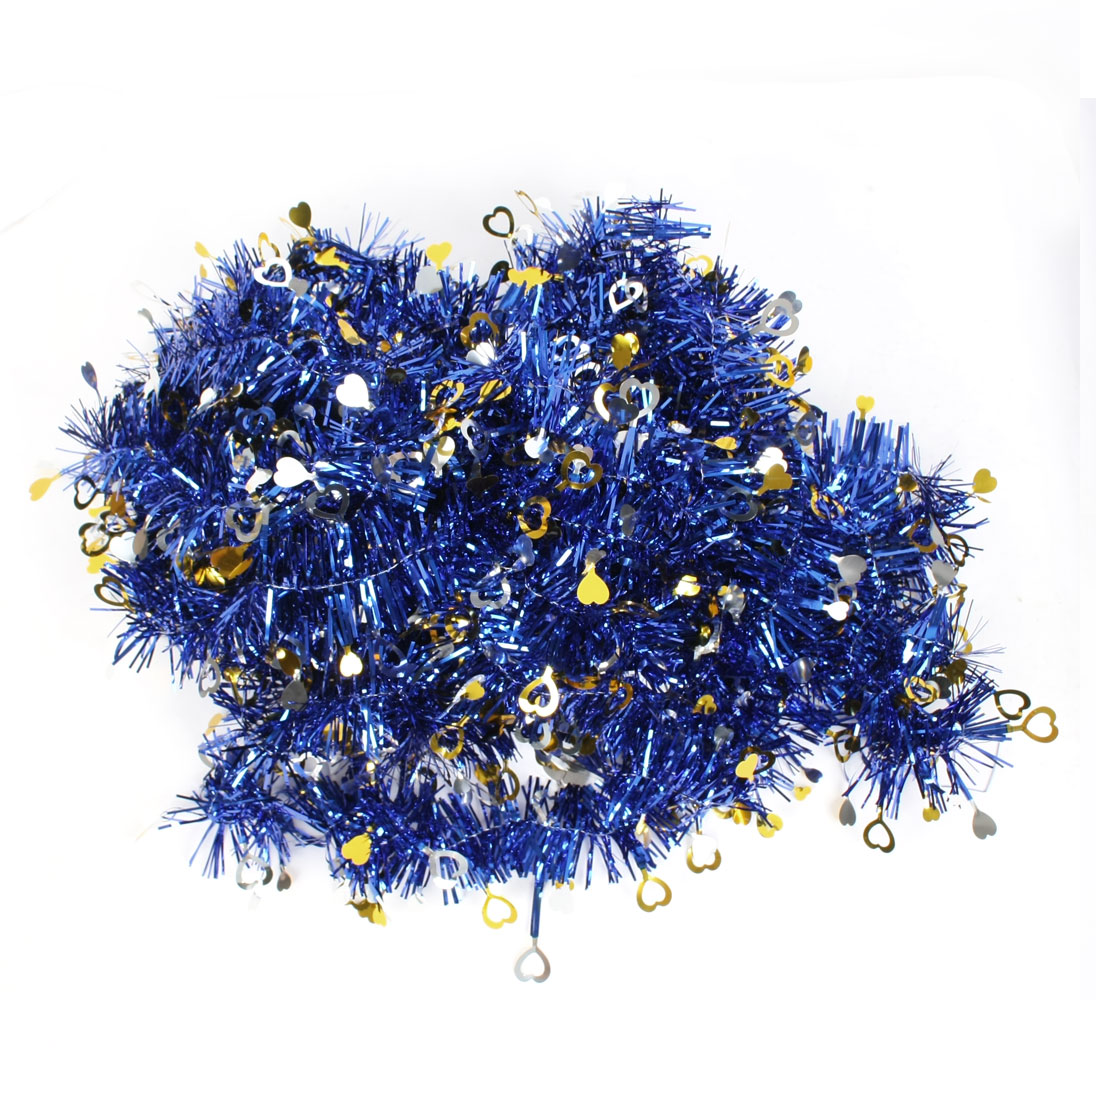 Sequins Decor Blue Gold Tone Glittery Fluffy Tinsel Garland for Stage Room Ornament 10 Pcs